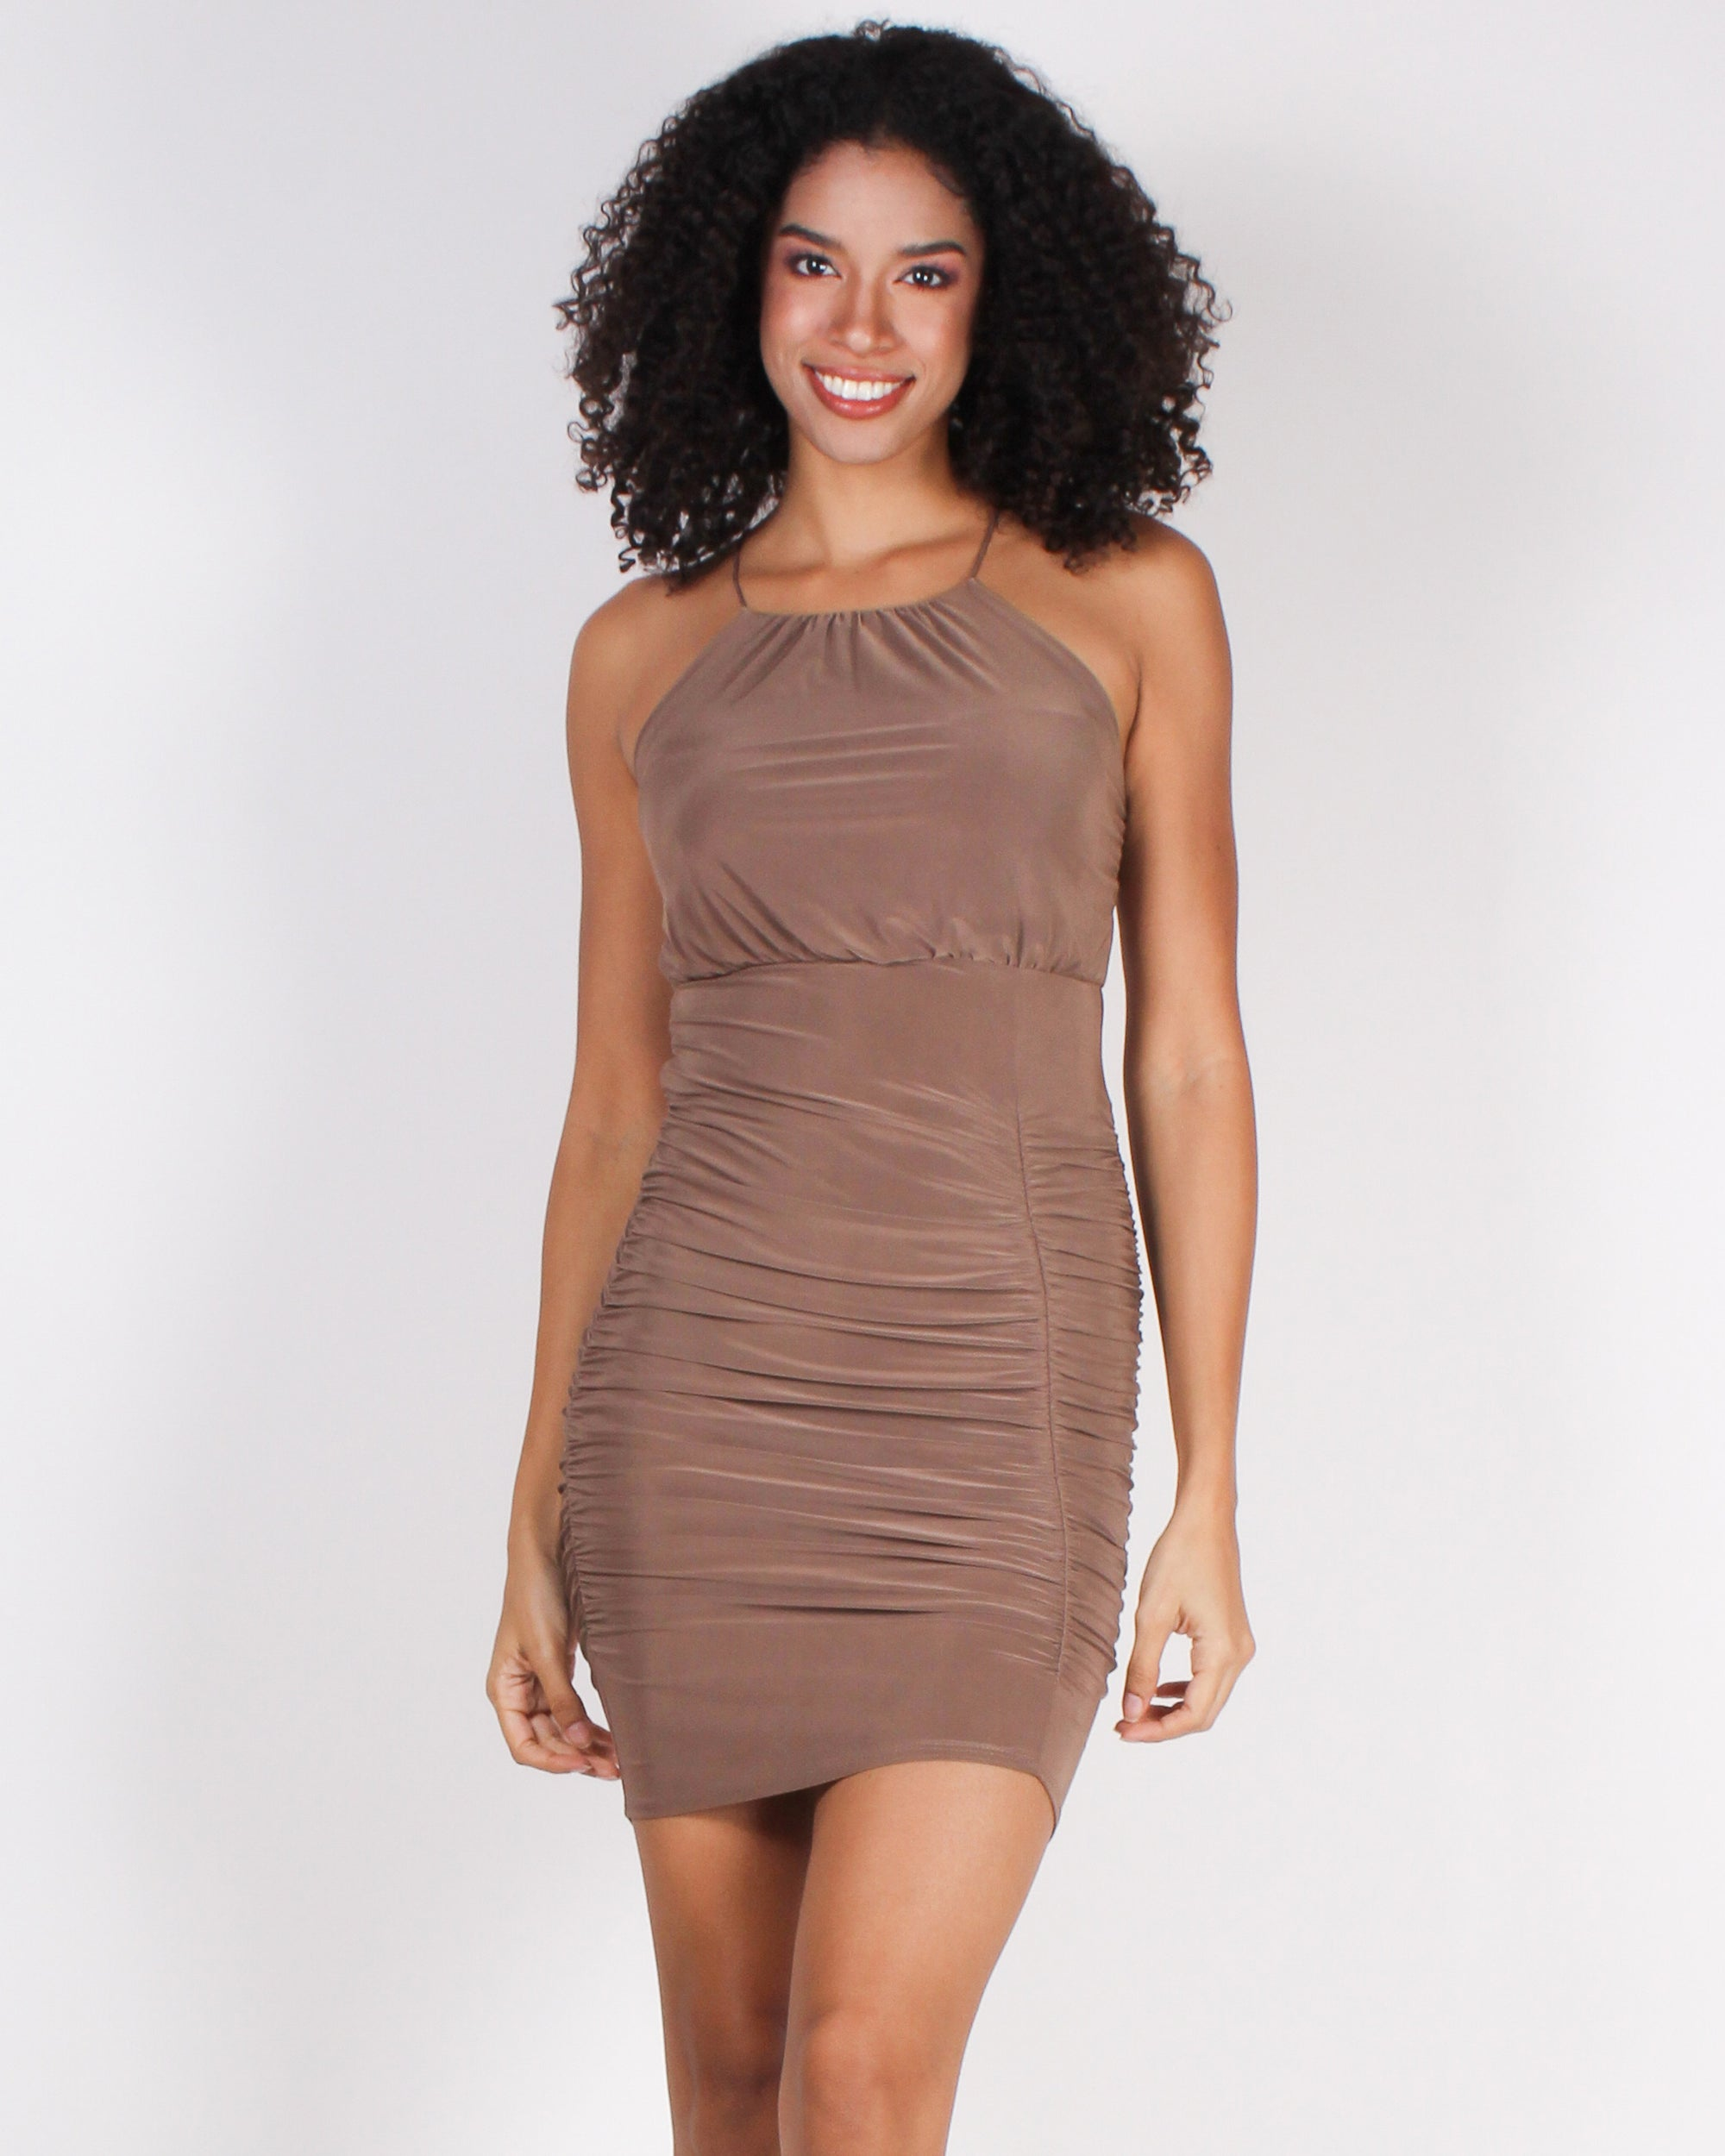 Dashion Q Shop Q Possibilities Await Bodycon Dress (Mocha) GD14571